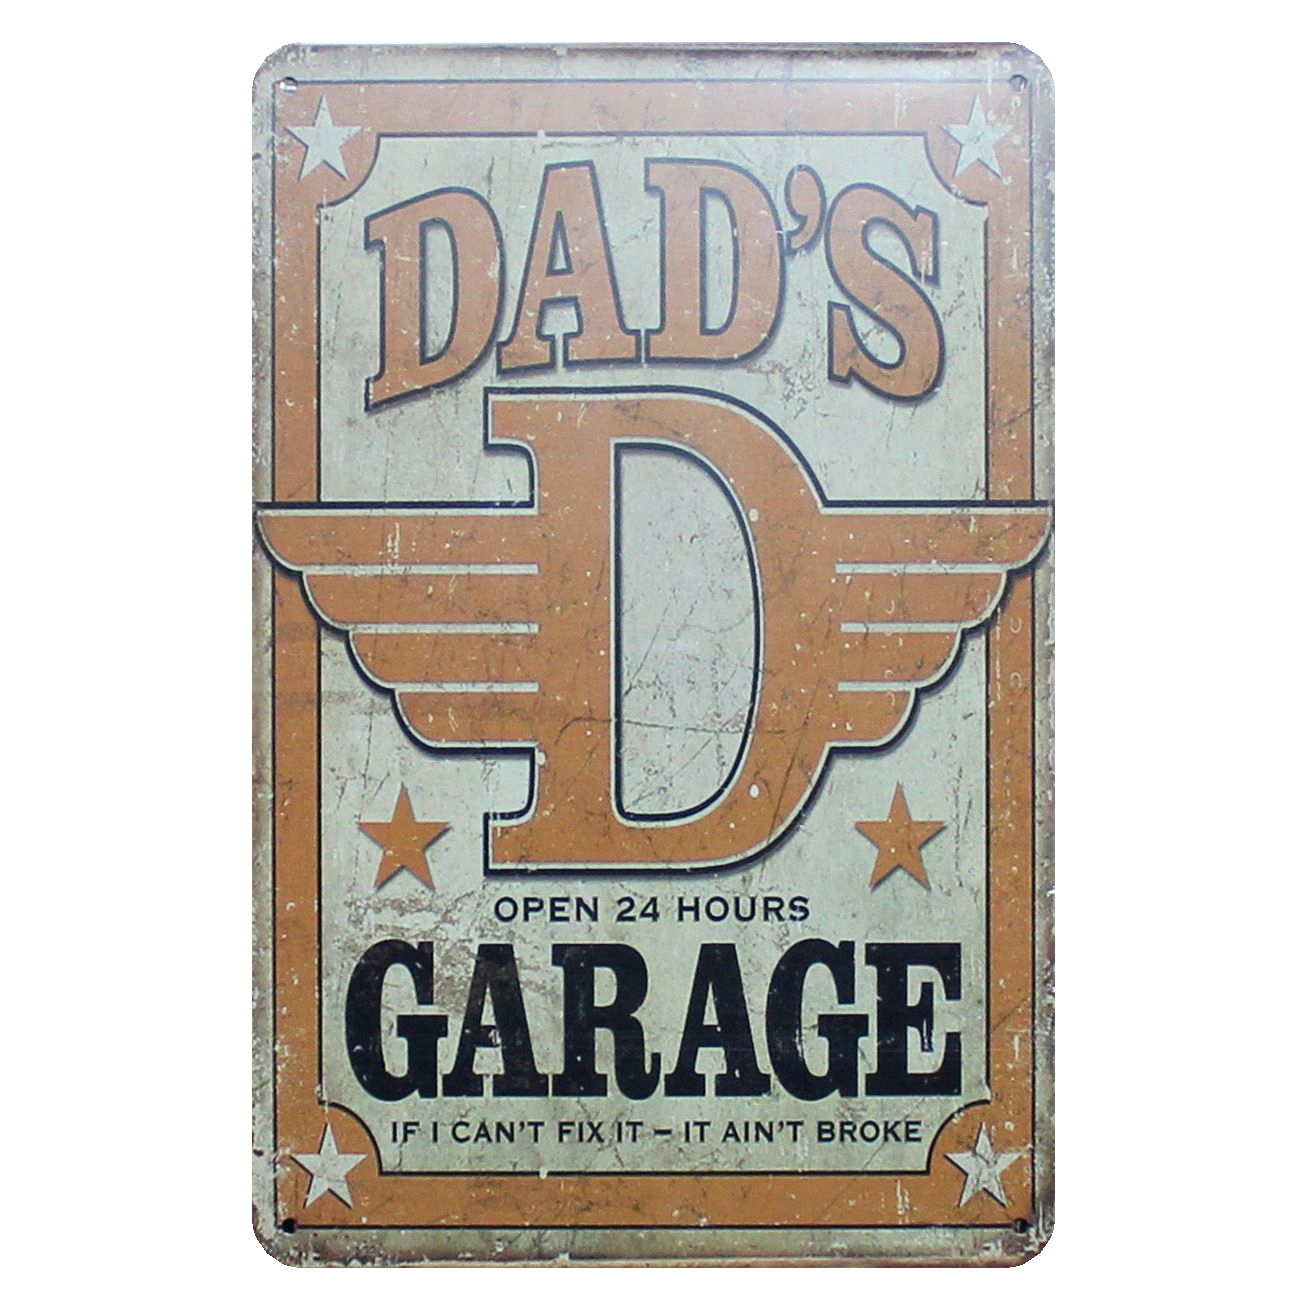 [ Mike86 ] DAD'S GARAGE OPEN 24 HOURS Classic Metal Signs